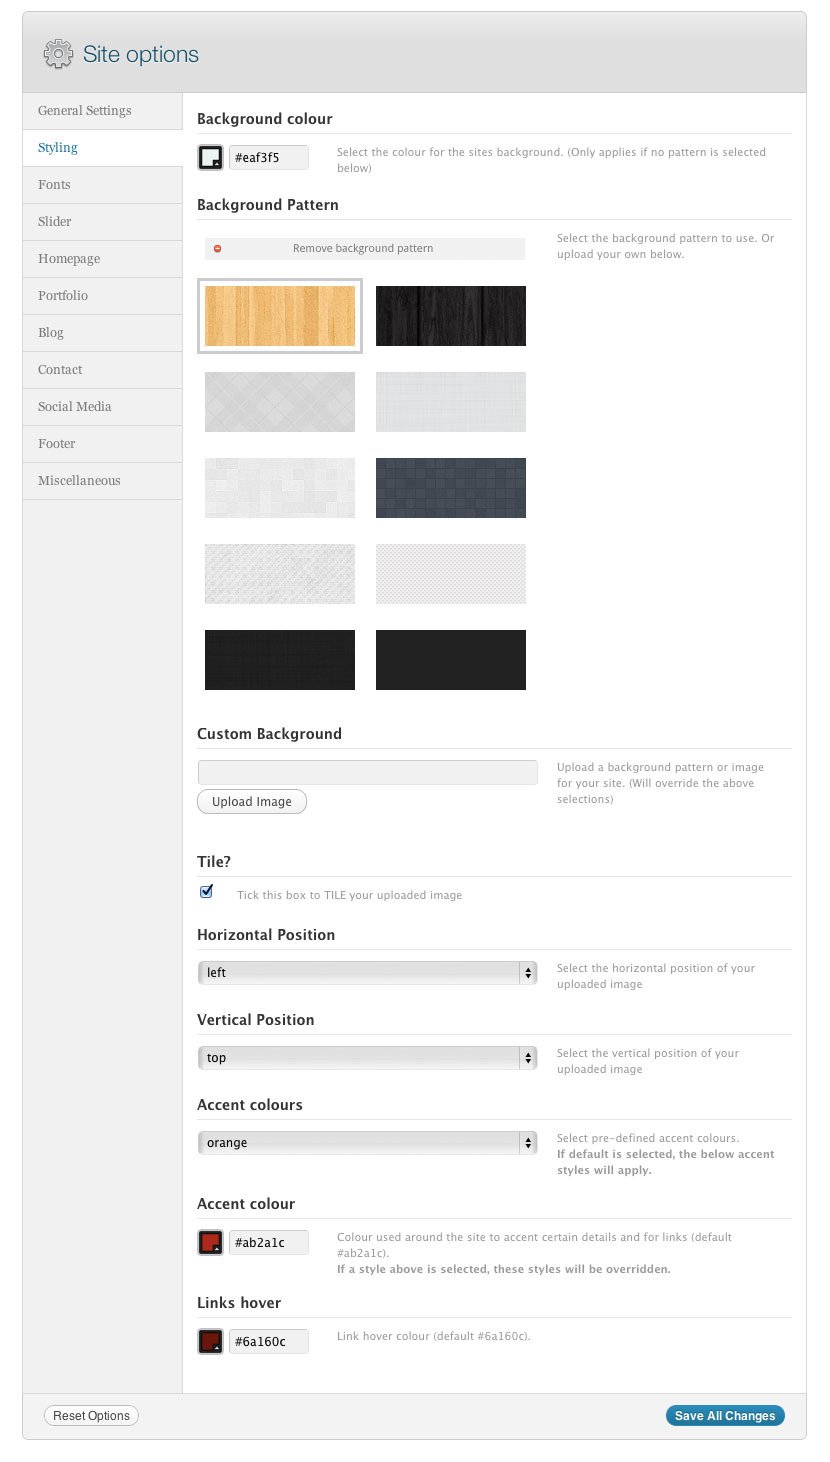 Jacto WordPress Portfolio - Options panel, showing some of the patterns available and how you can upload your own background